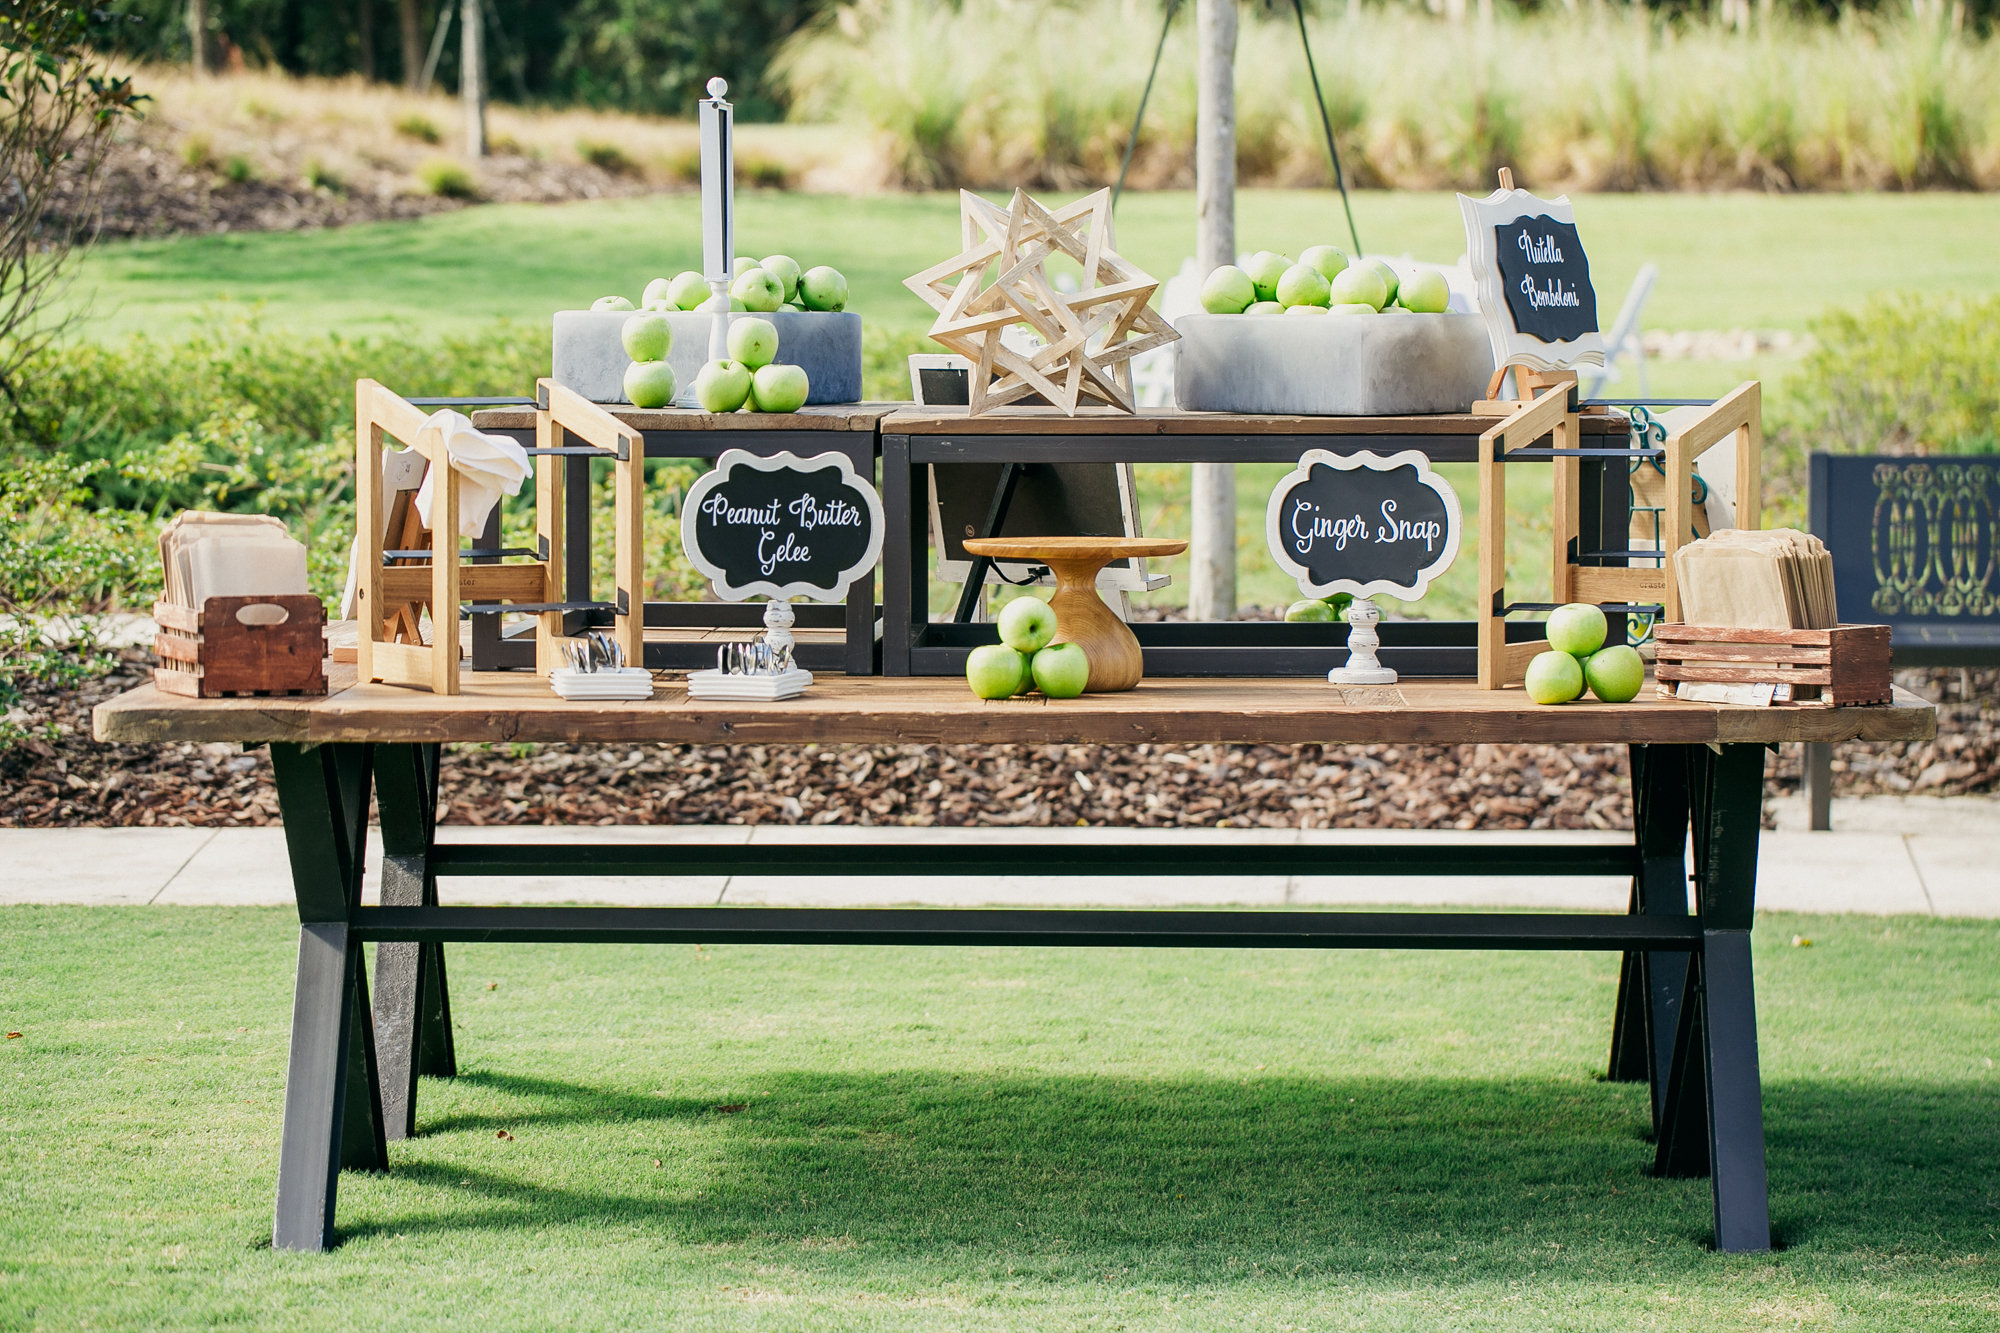 Outdoor Wedding Ideas From Engage!15